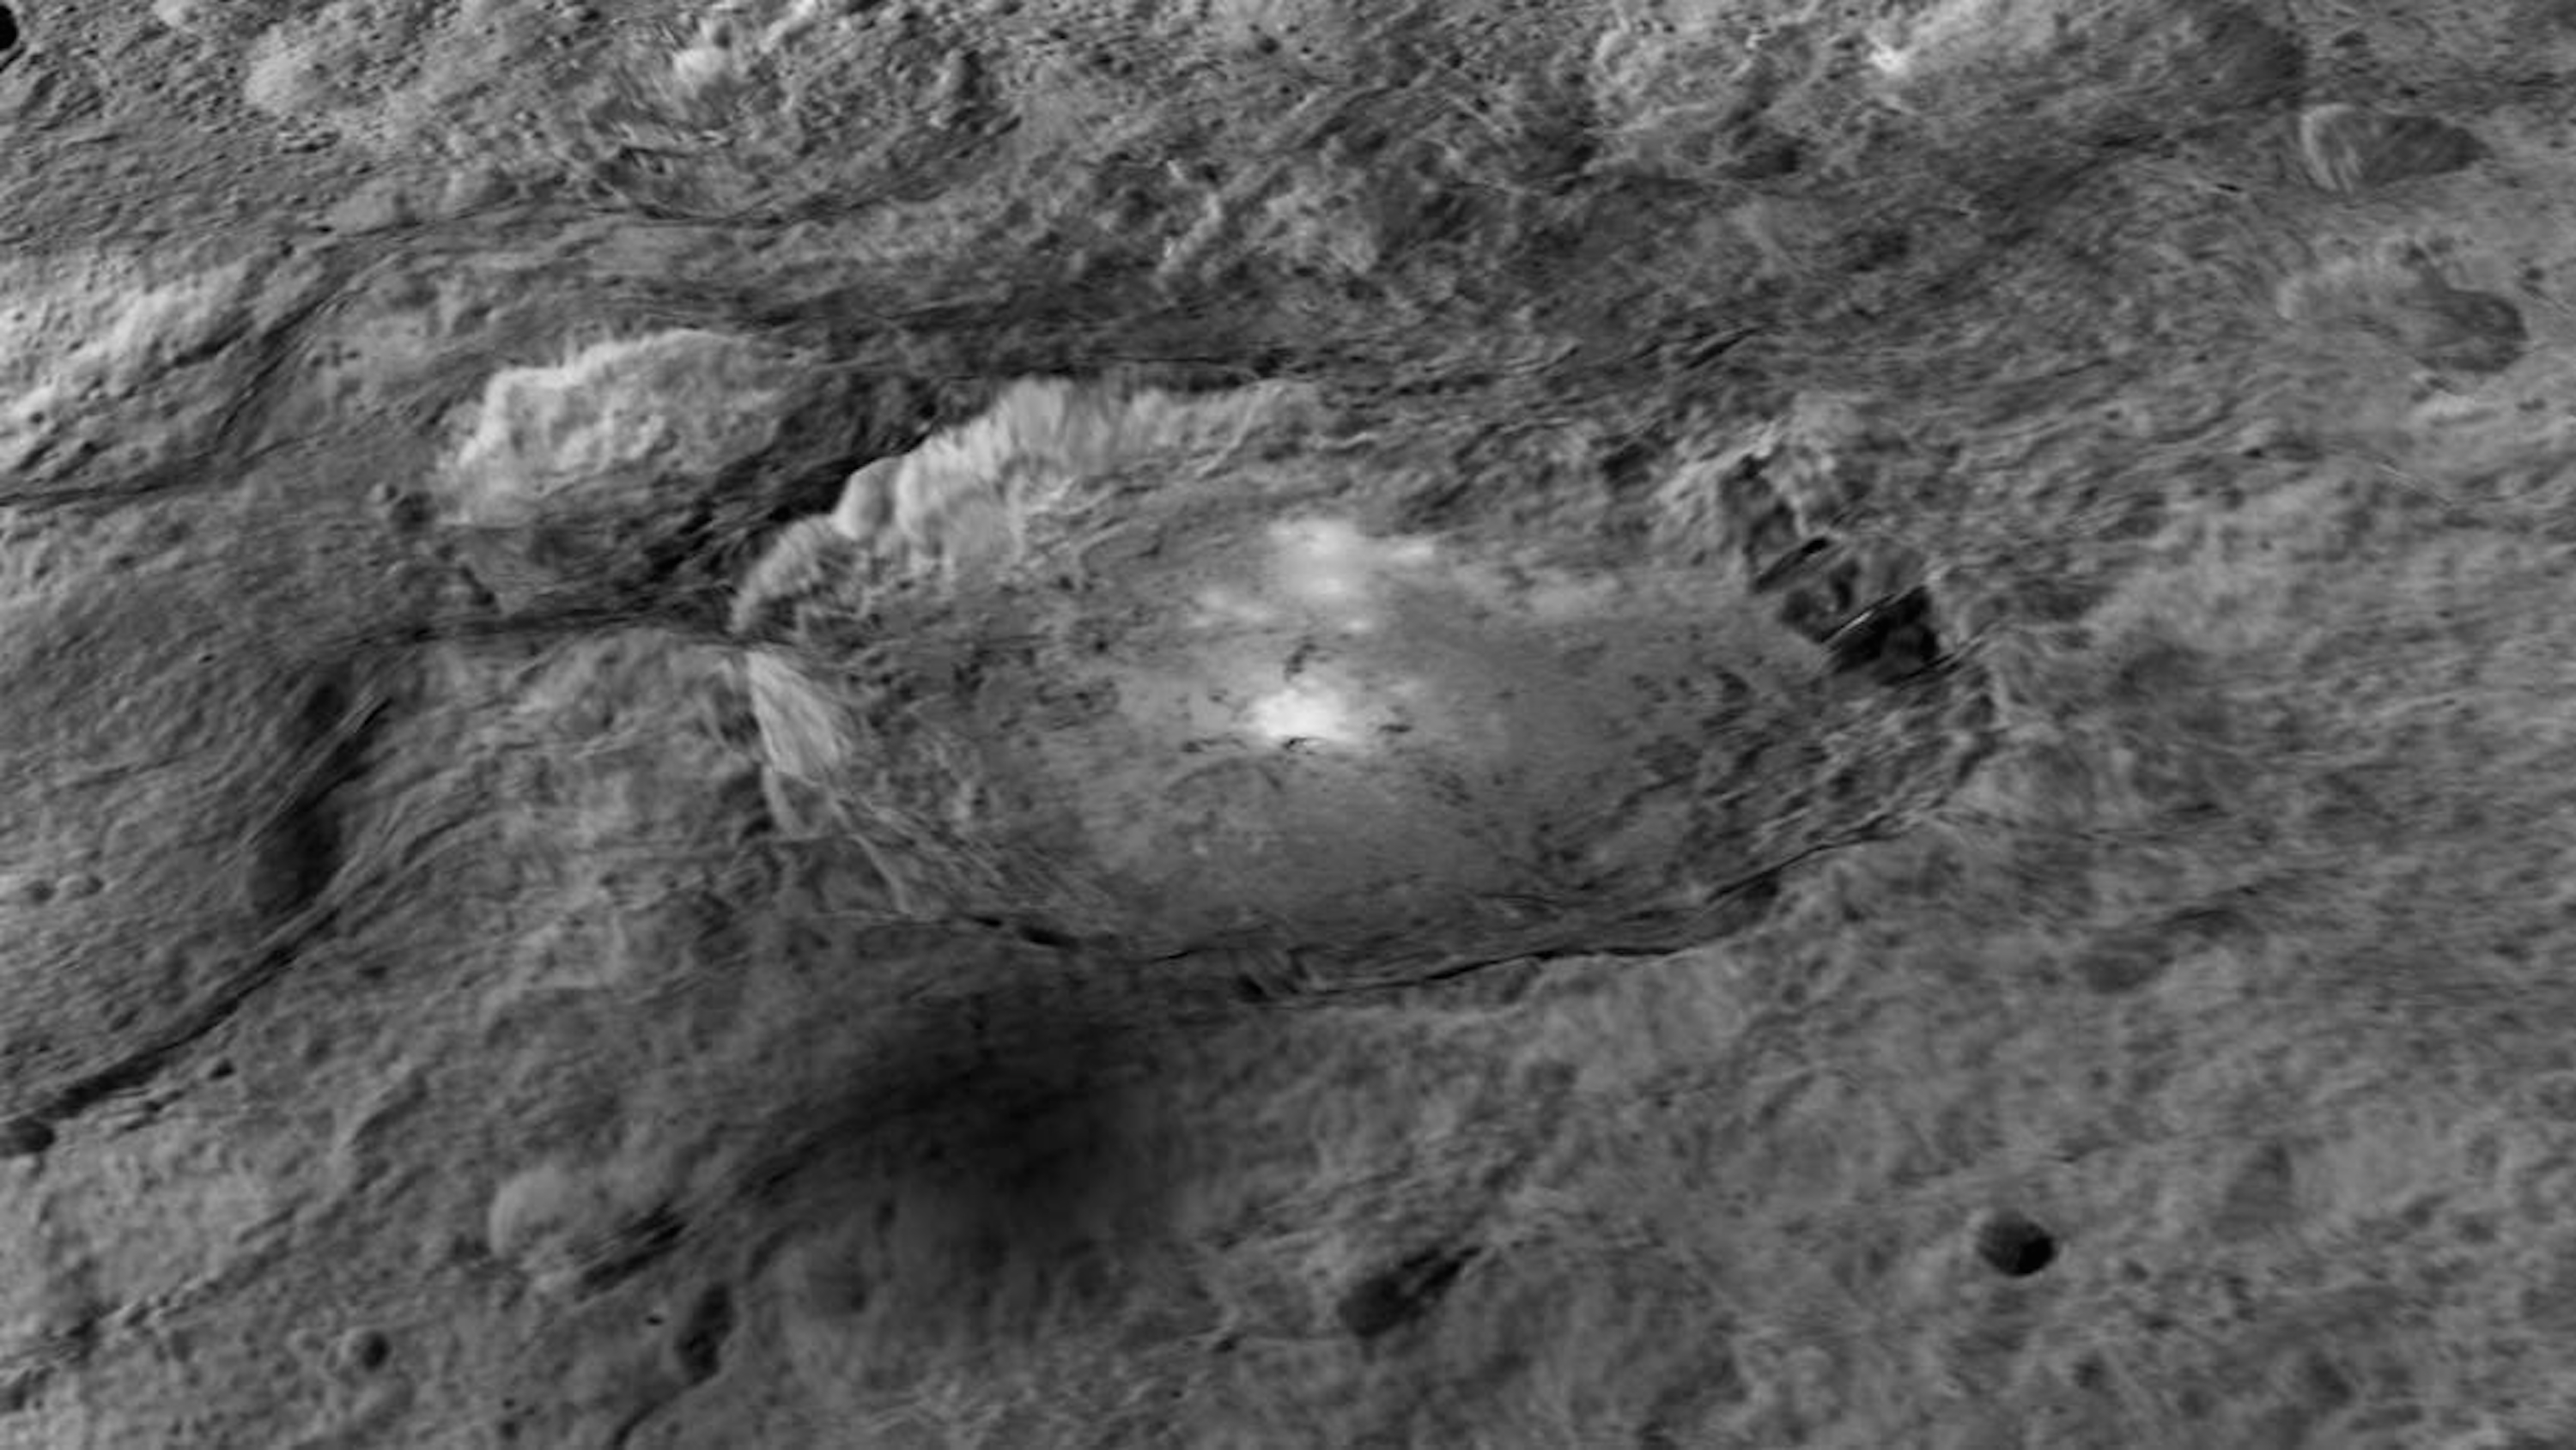 Ceres bright spot in in a crater named Occator, which is about 4 km deep